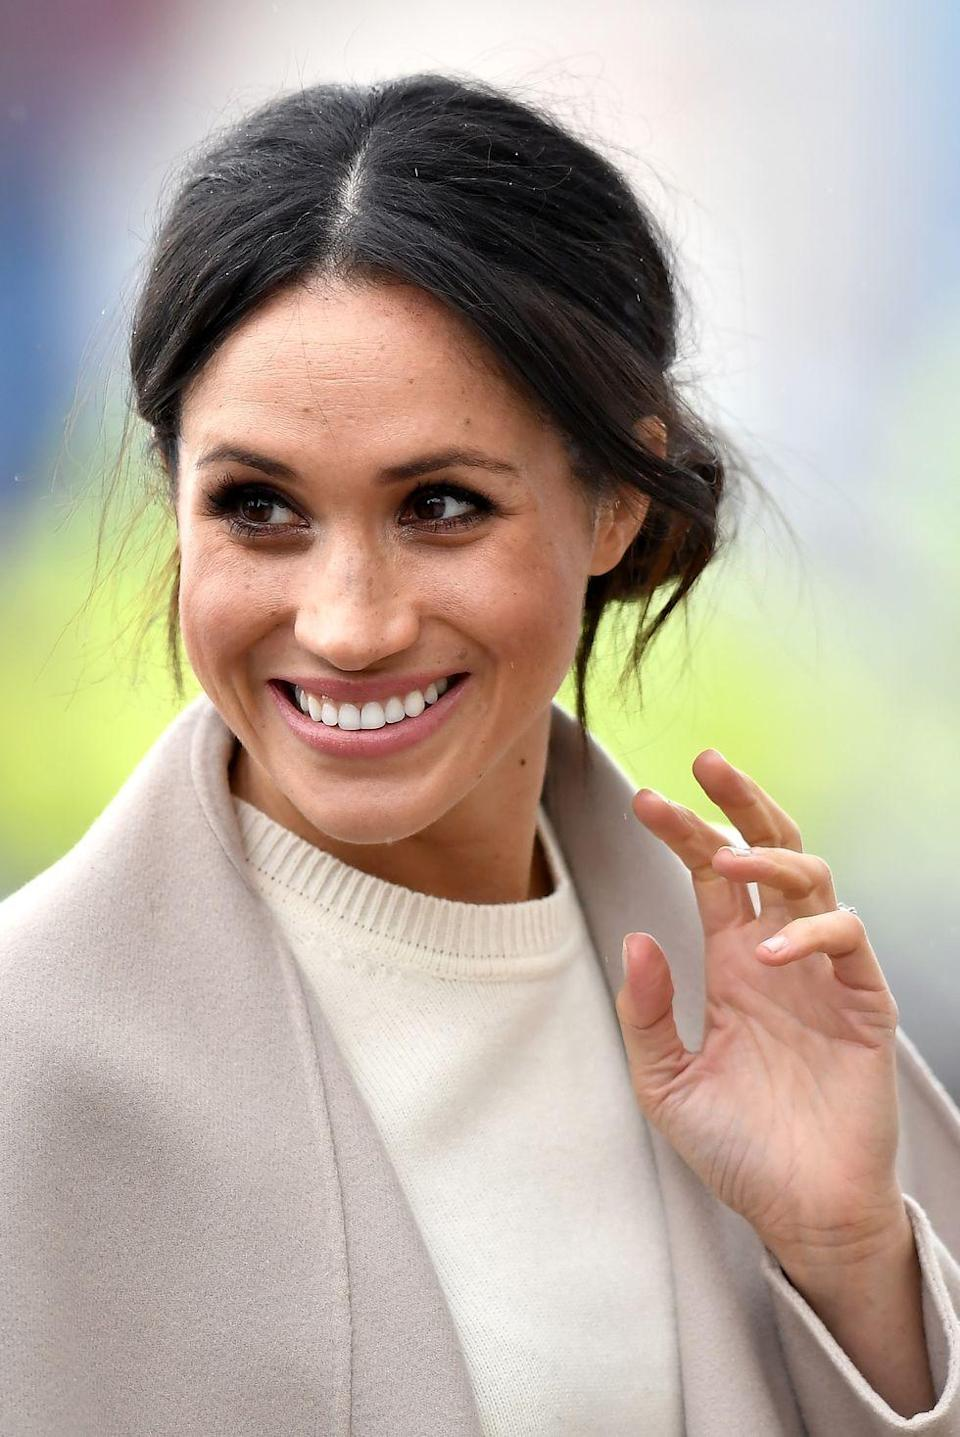 """<p><em>The Crown</em> is only set to run for six seasons, but it's later seasons are expected to delve into the modern members of the royal family—including the Duchess of Sussex, Meghan Markle. </p><p>The former actress apparently has a standing invitation to play herself on the drama, if she wants to come out of retirement for the role. </p><p>""""I want to see an episode where Trump comes to Buckingham Palace,"""" Left Bank creative director Suzanne Mackie <a href=""""https://variety.com/2018/tv/news/the-crown-season-3-donald-trump-megan-markle-1202725163/"""" rel=""""nofollow noopener"""" target=""""_blank"""" data-ylk=""""slk:said"""" class=""""link rapid-noclick-resp"""">said</a> of potential future episodes dealing with modern times. </p><p>As for Meghan Markle, Mackie said, """"She can play herself.""""</p>"""